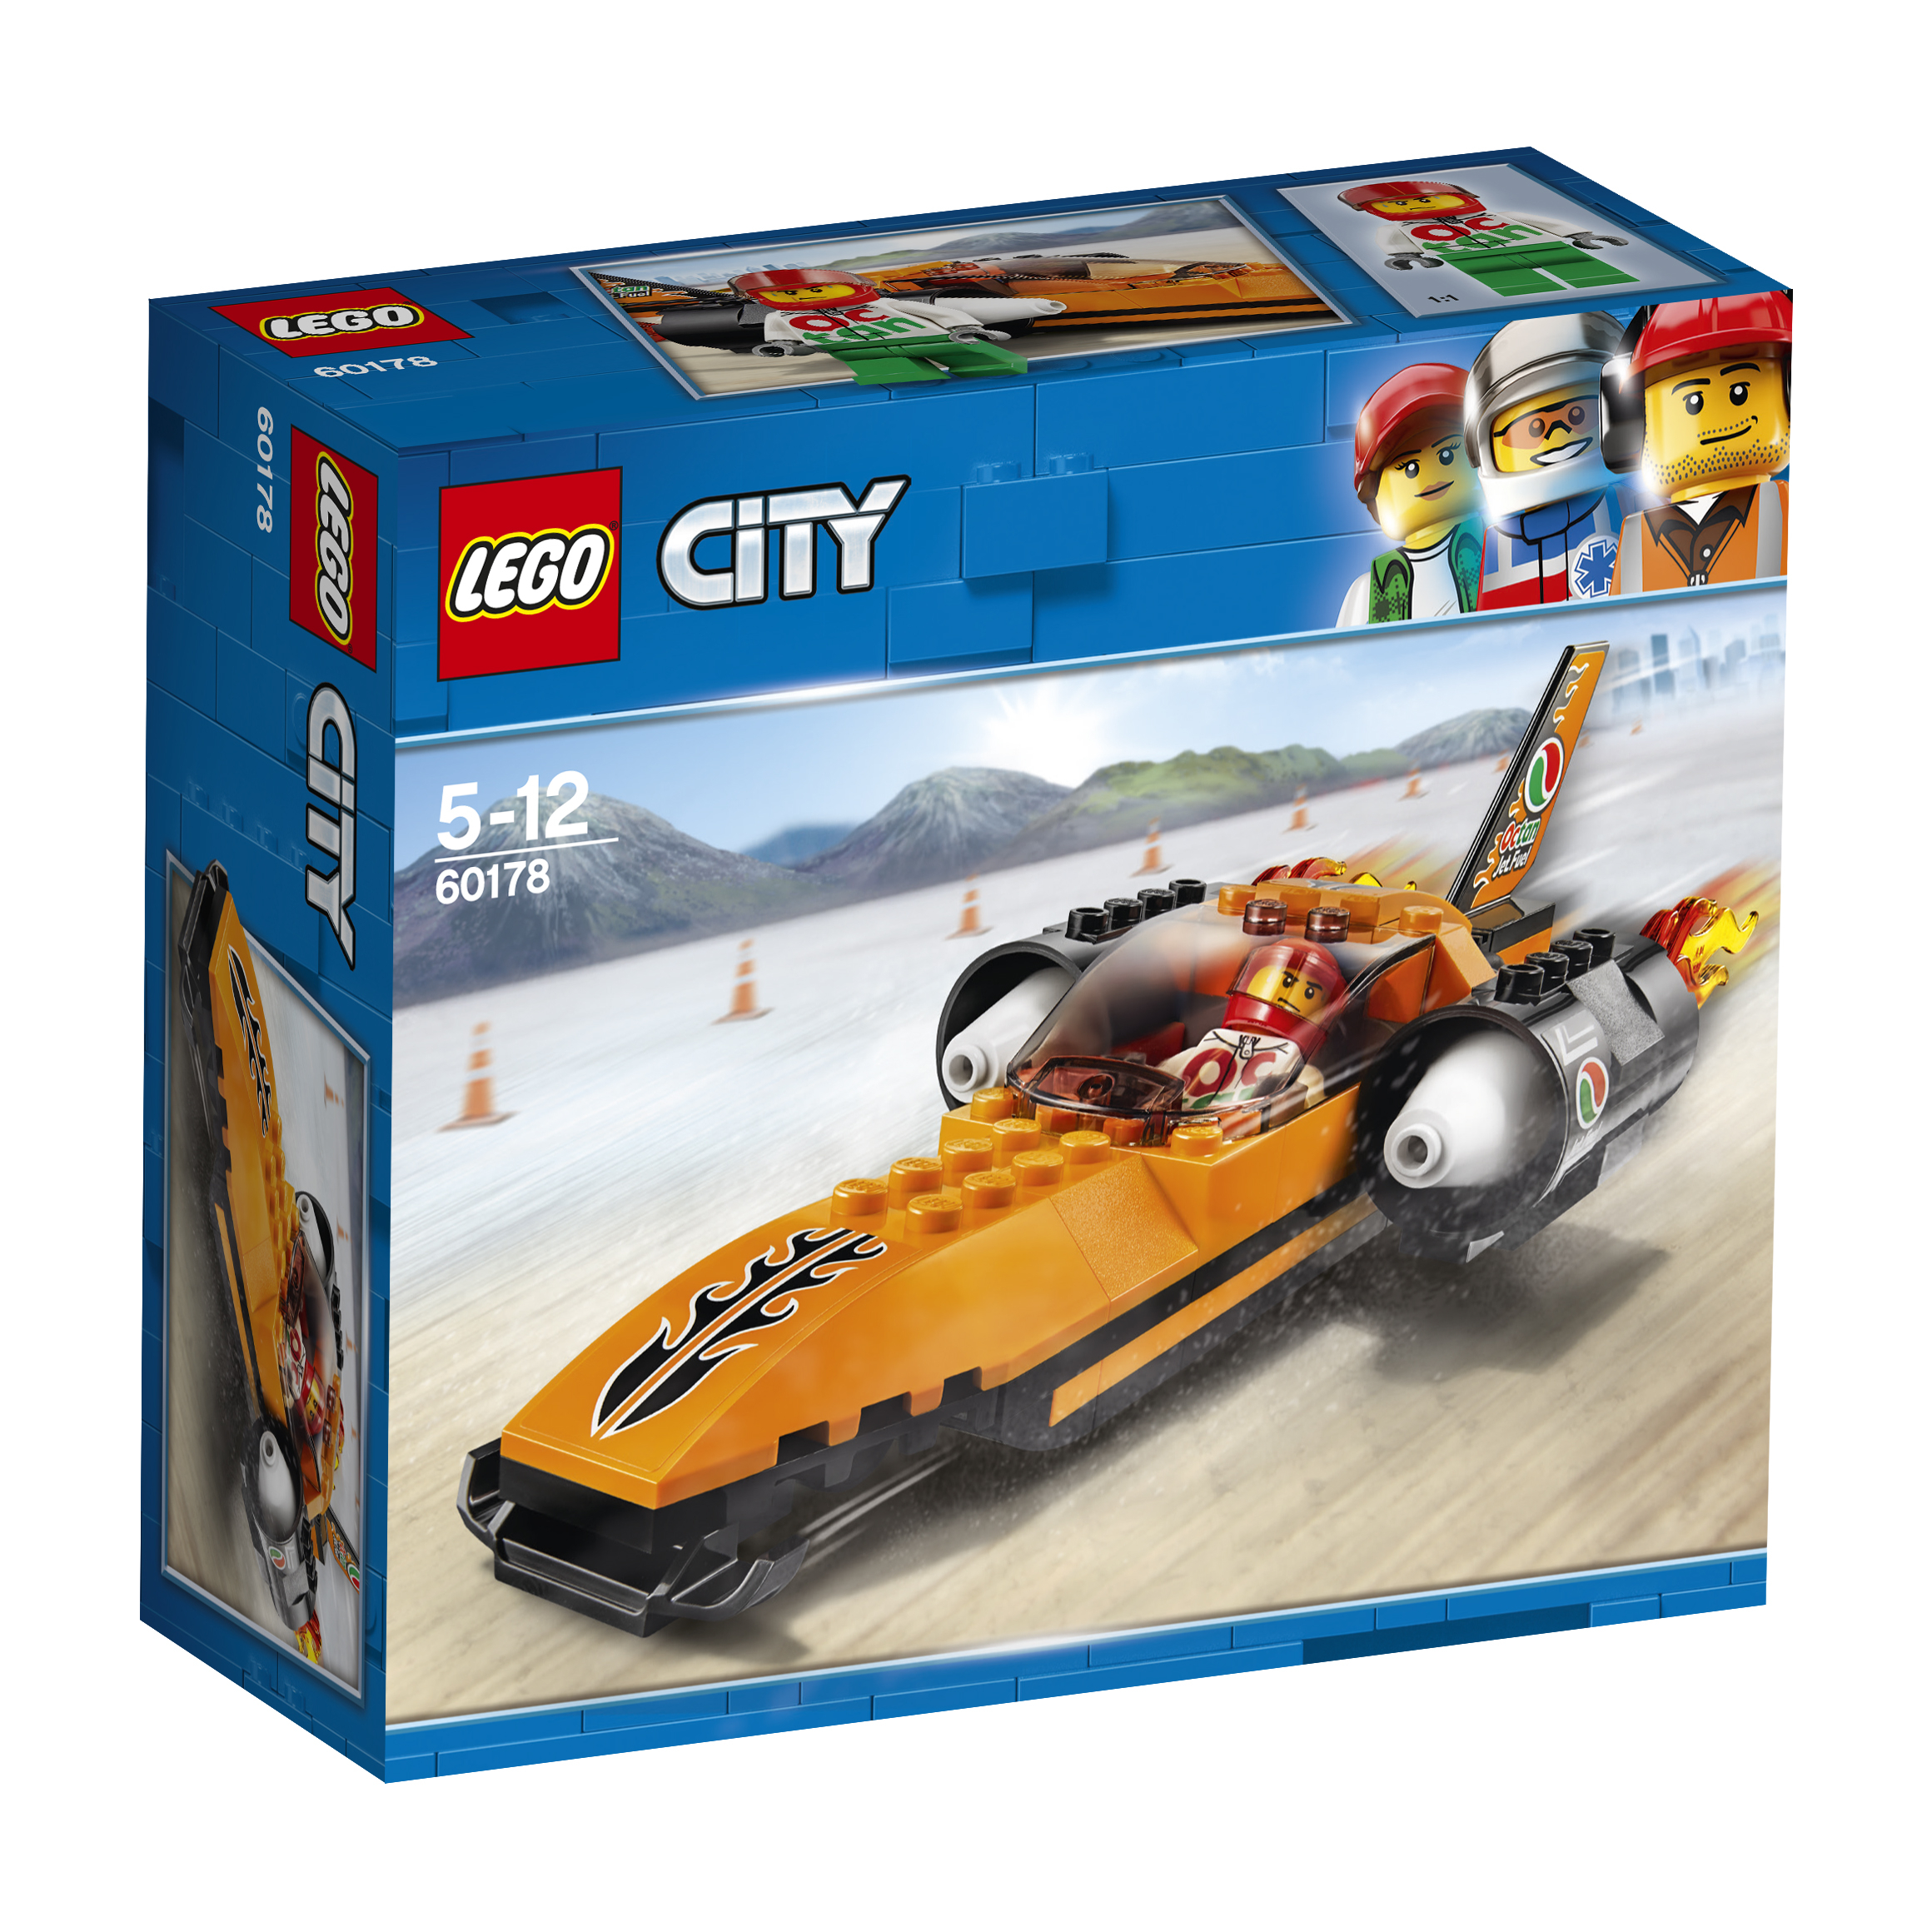 Конструктор LEGO City Great Vehicles 60178 Гоночный автомобиль lego city great vehicles 60180 монстр трак конструктор